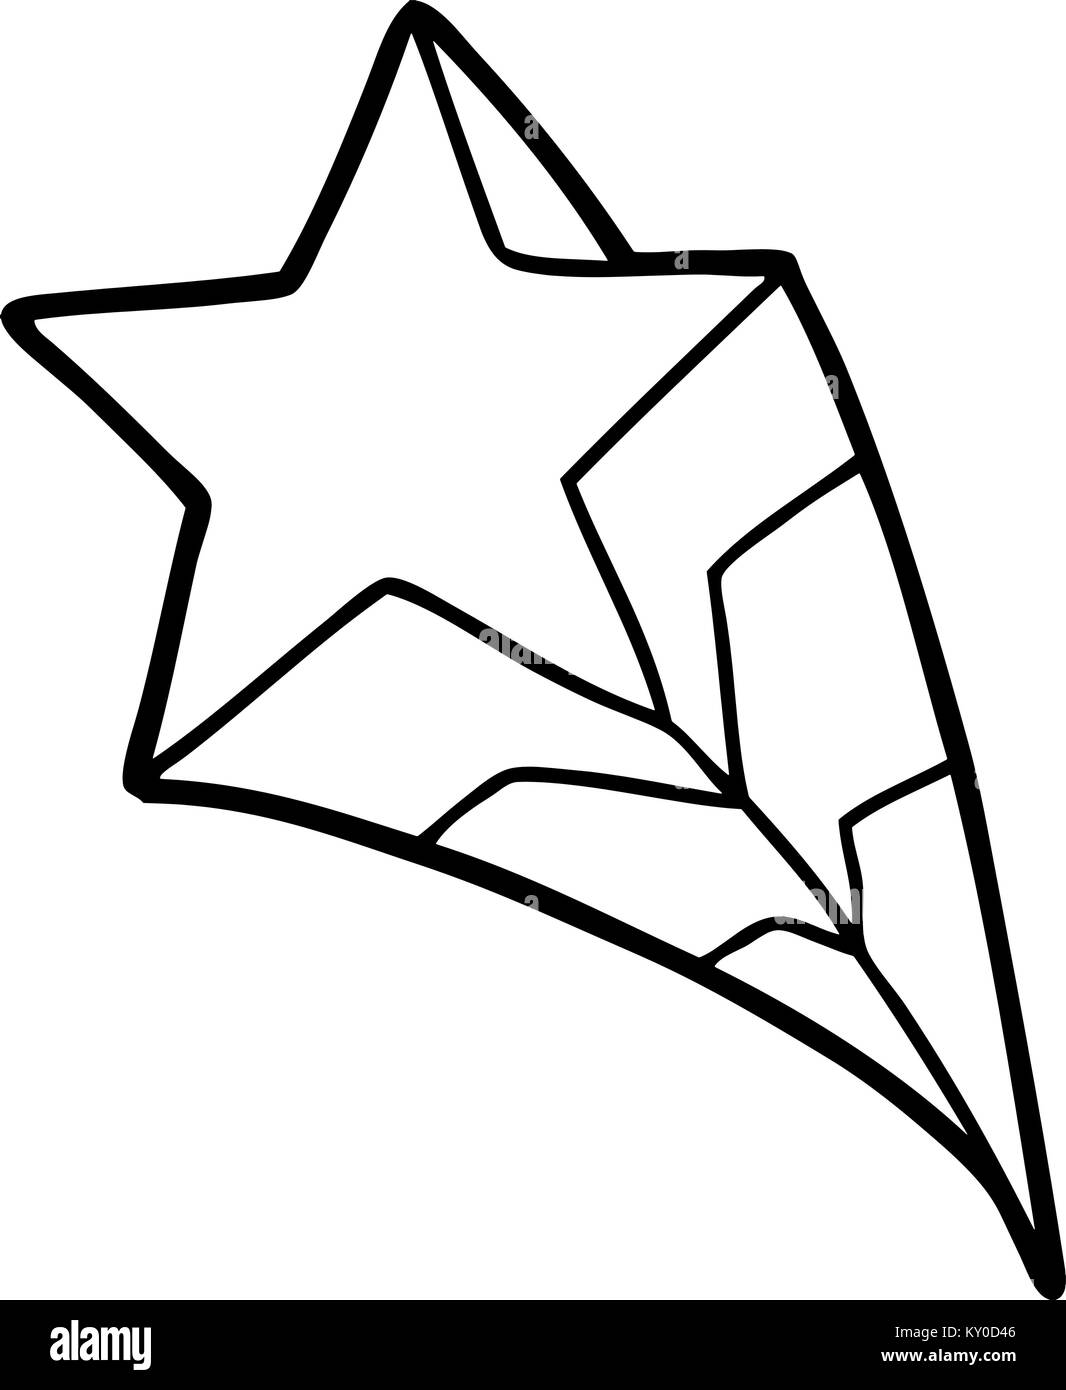 Shooting star drawing black and white stock photos images